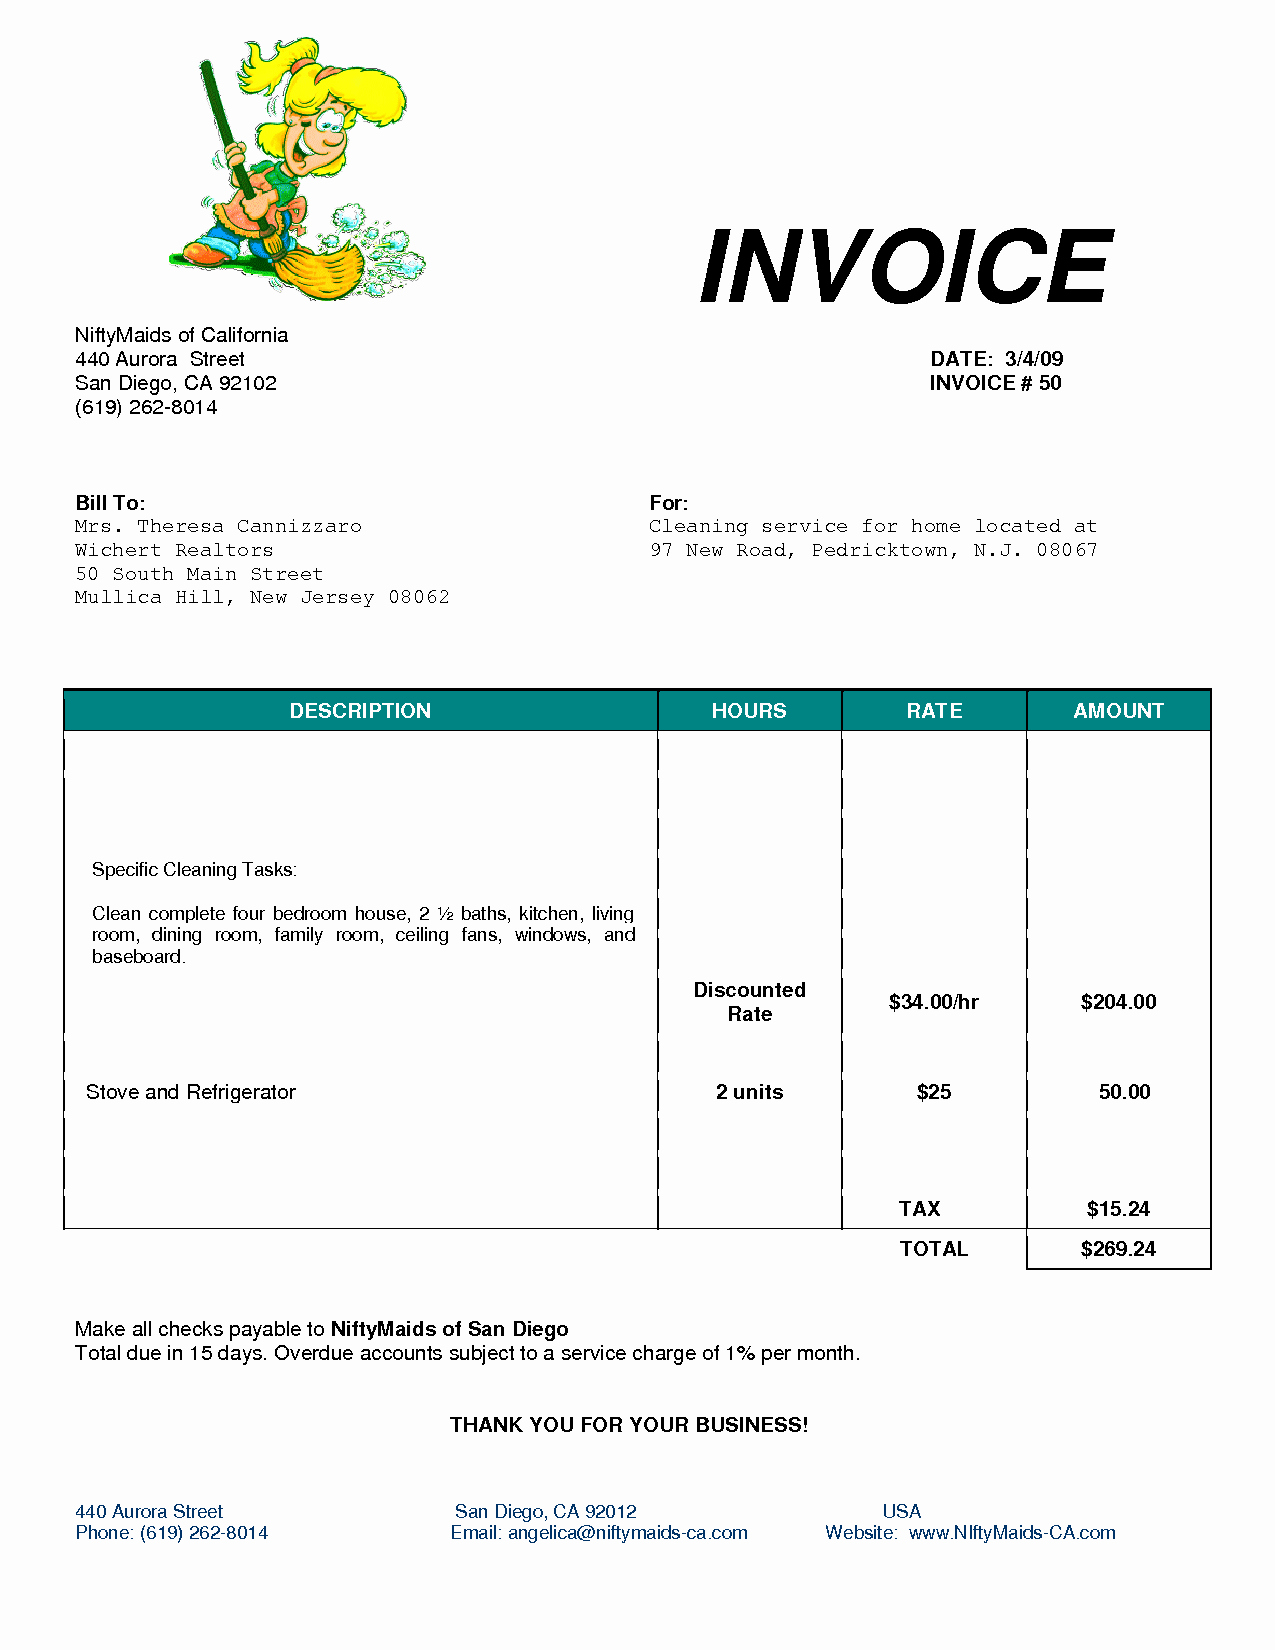 Cleaning Service Invoice Template New Cleaning Invoice Template Uk